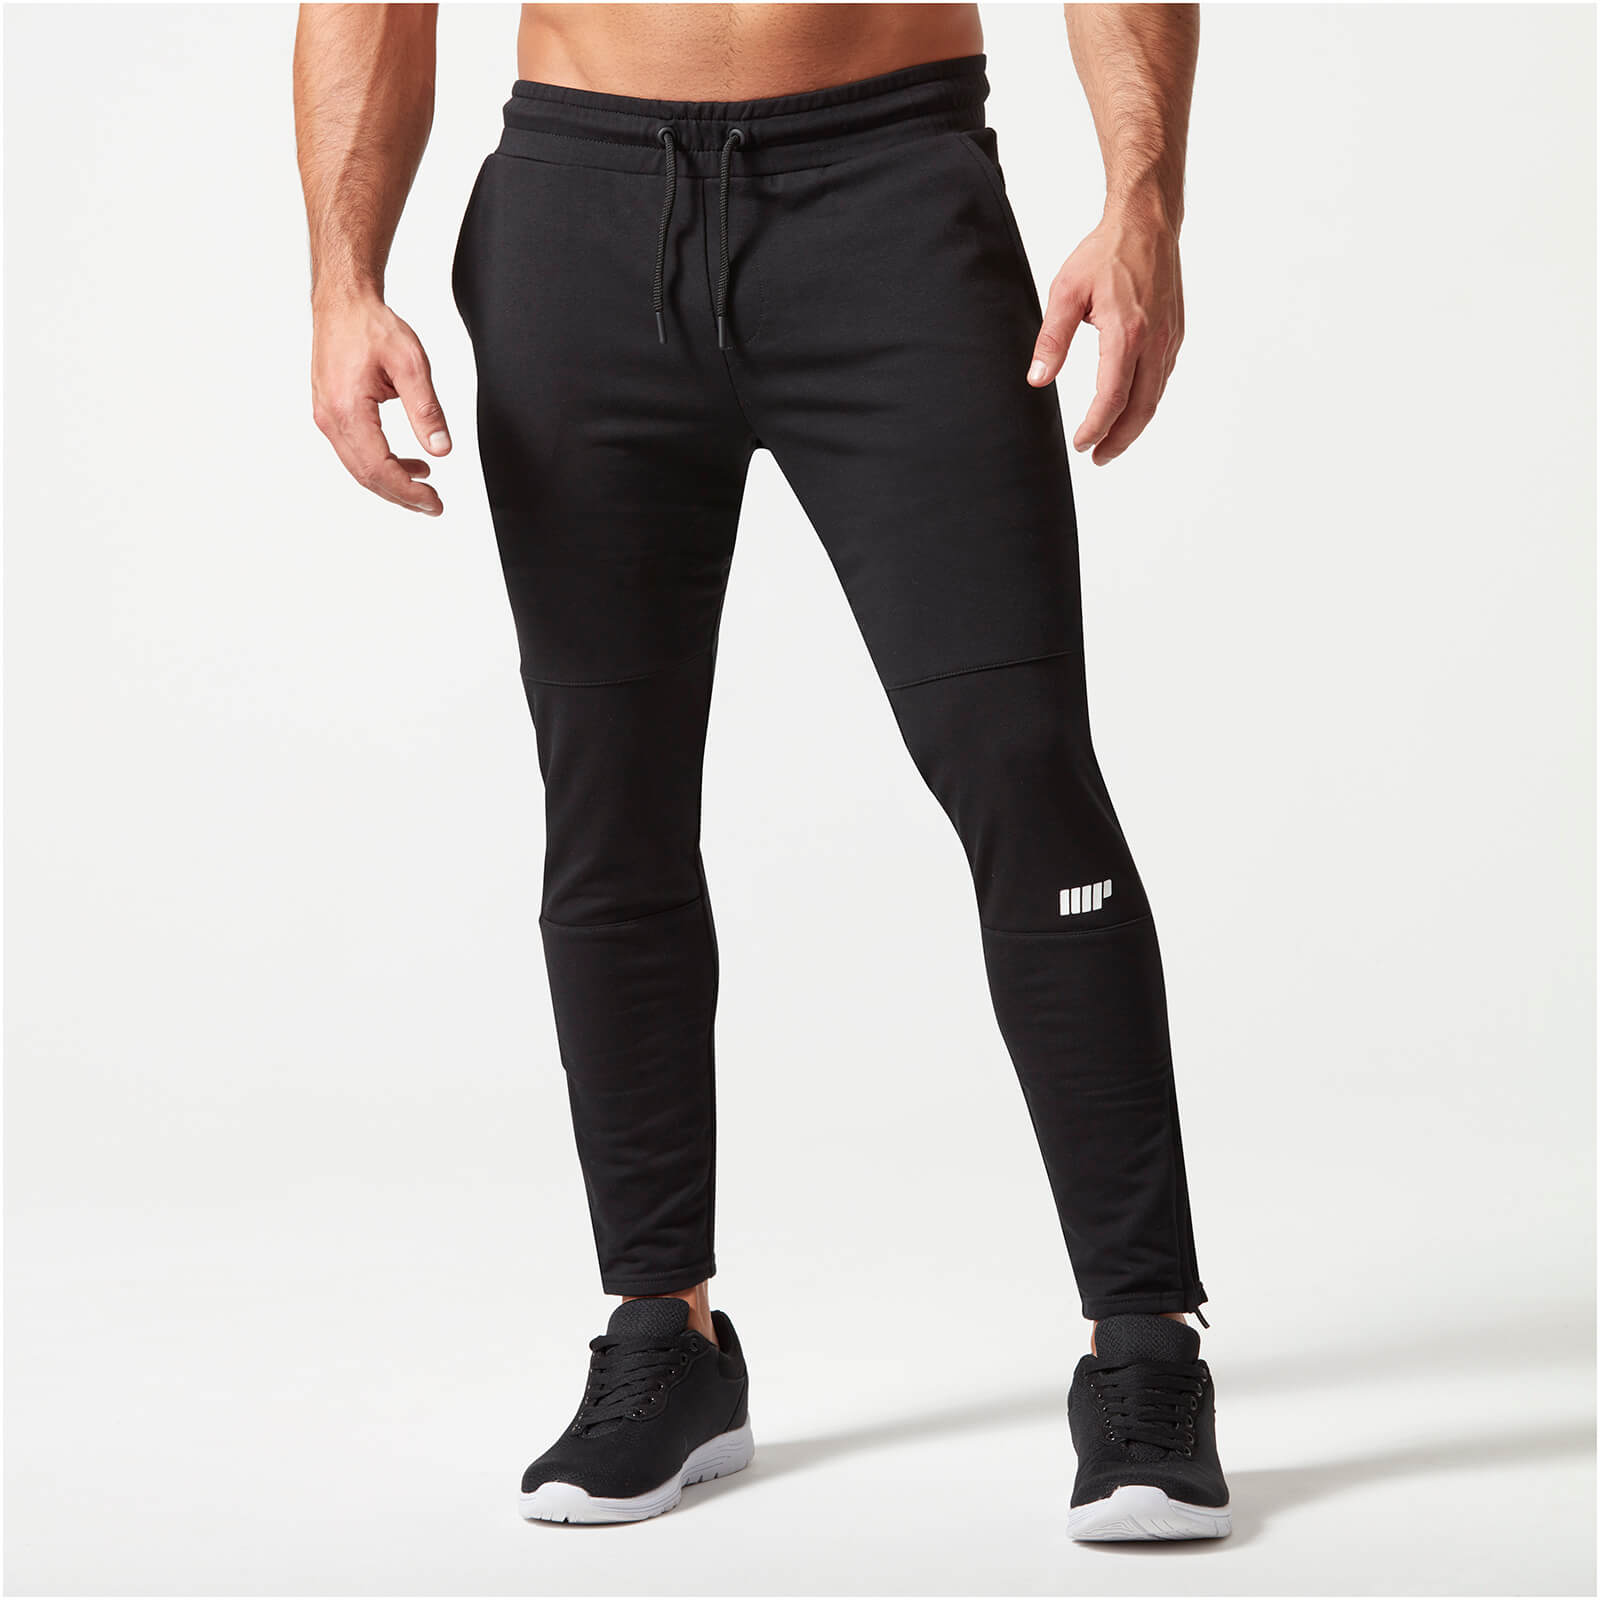 MYPROTEIN Clothing Outlet Sale – <span> As low as $2.7! </span>